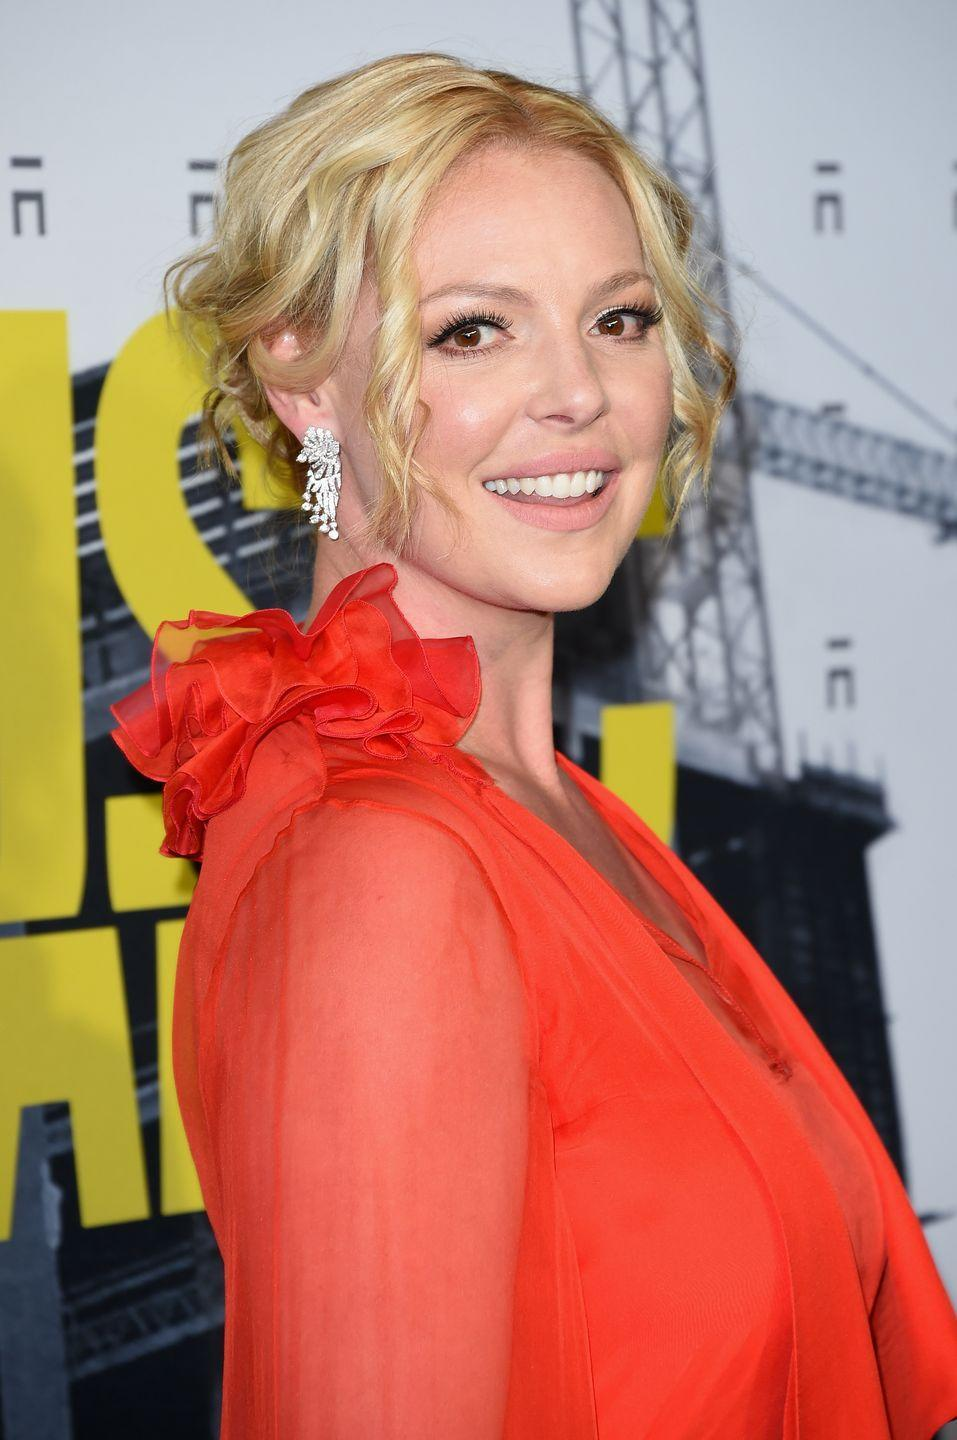 """<p>Katherine Heigl was <a href=""""http://www.nytimes.com/2010/10/03/movies/03heigl.html?_r=4&pagewanted=2"""" rel=""""nofollow noopener"""" target=""""_blank"""" data-ylk=""""slk:rumored to play Claire."""" class=""""link rapid-noclick-resp"""">rumored to play Claire.</a></p>"""